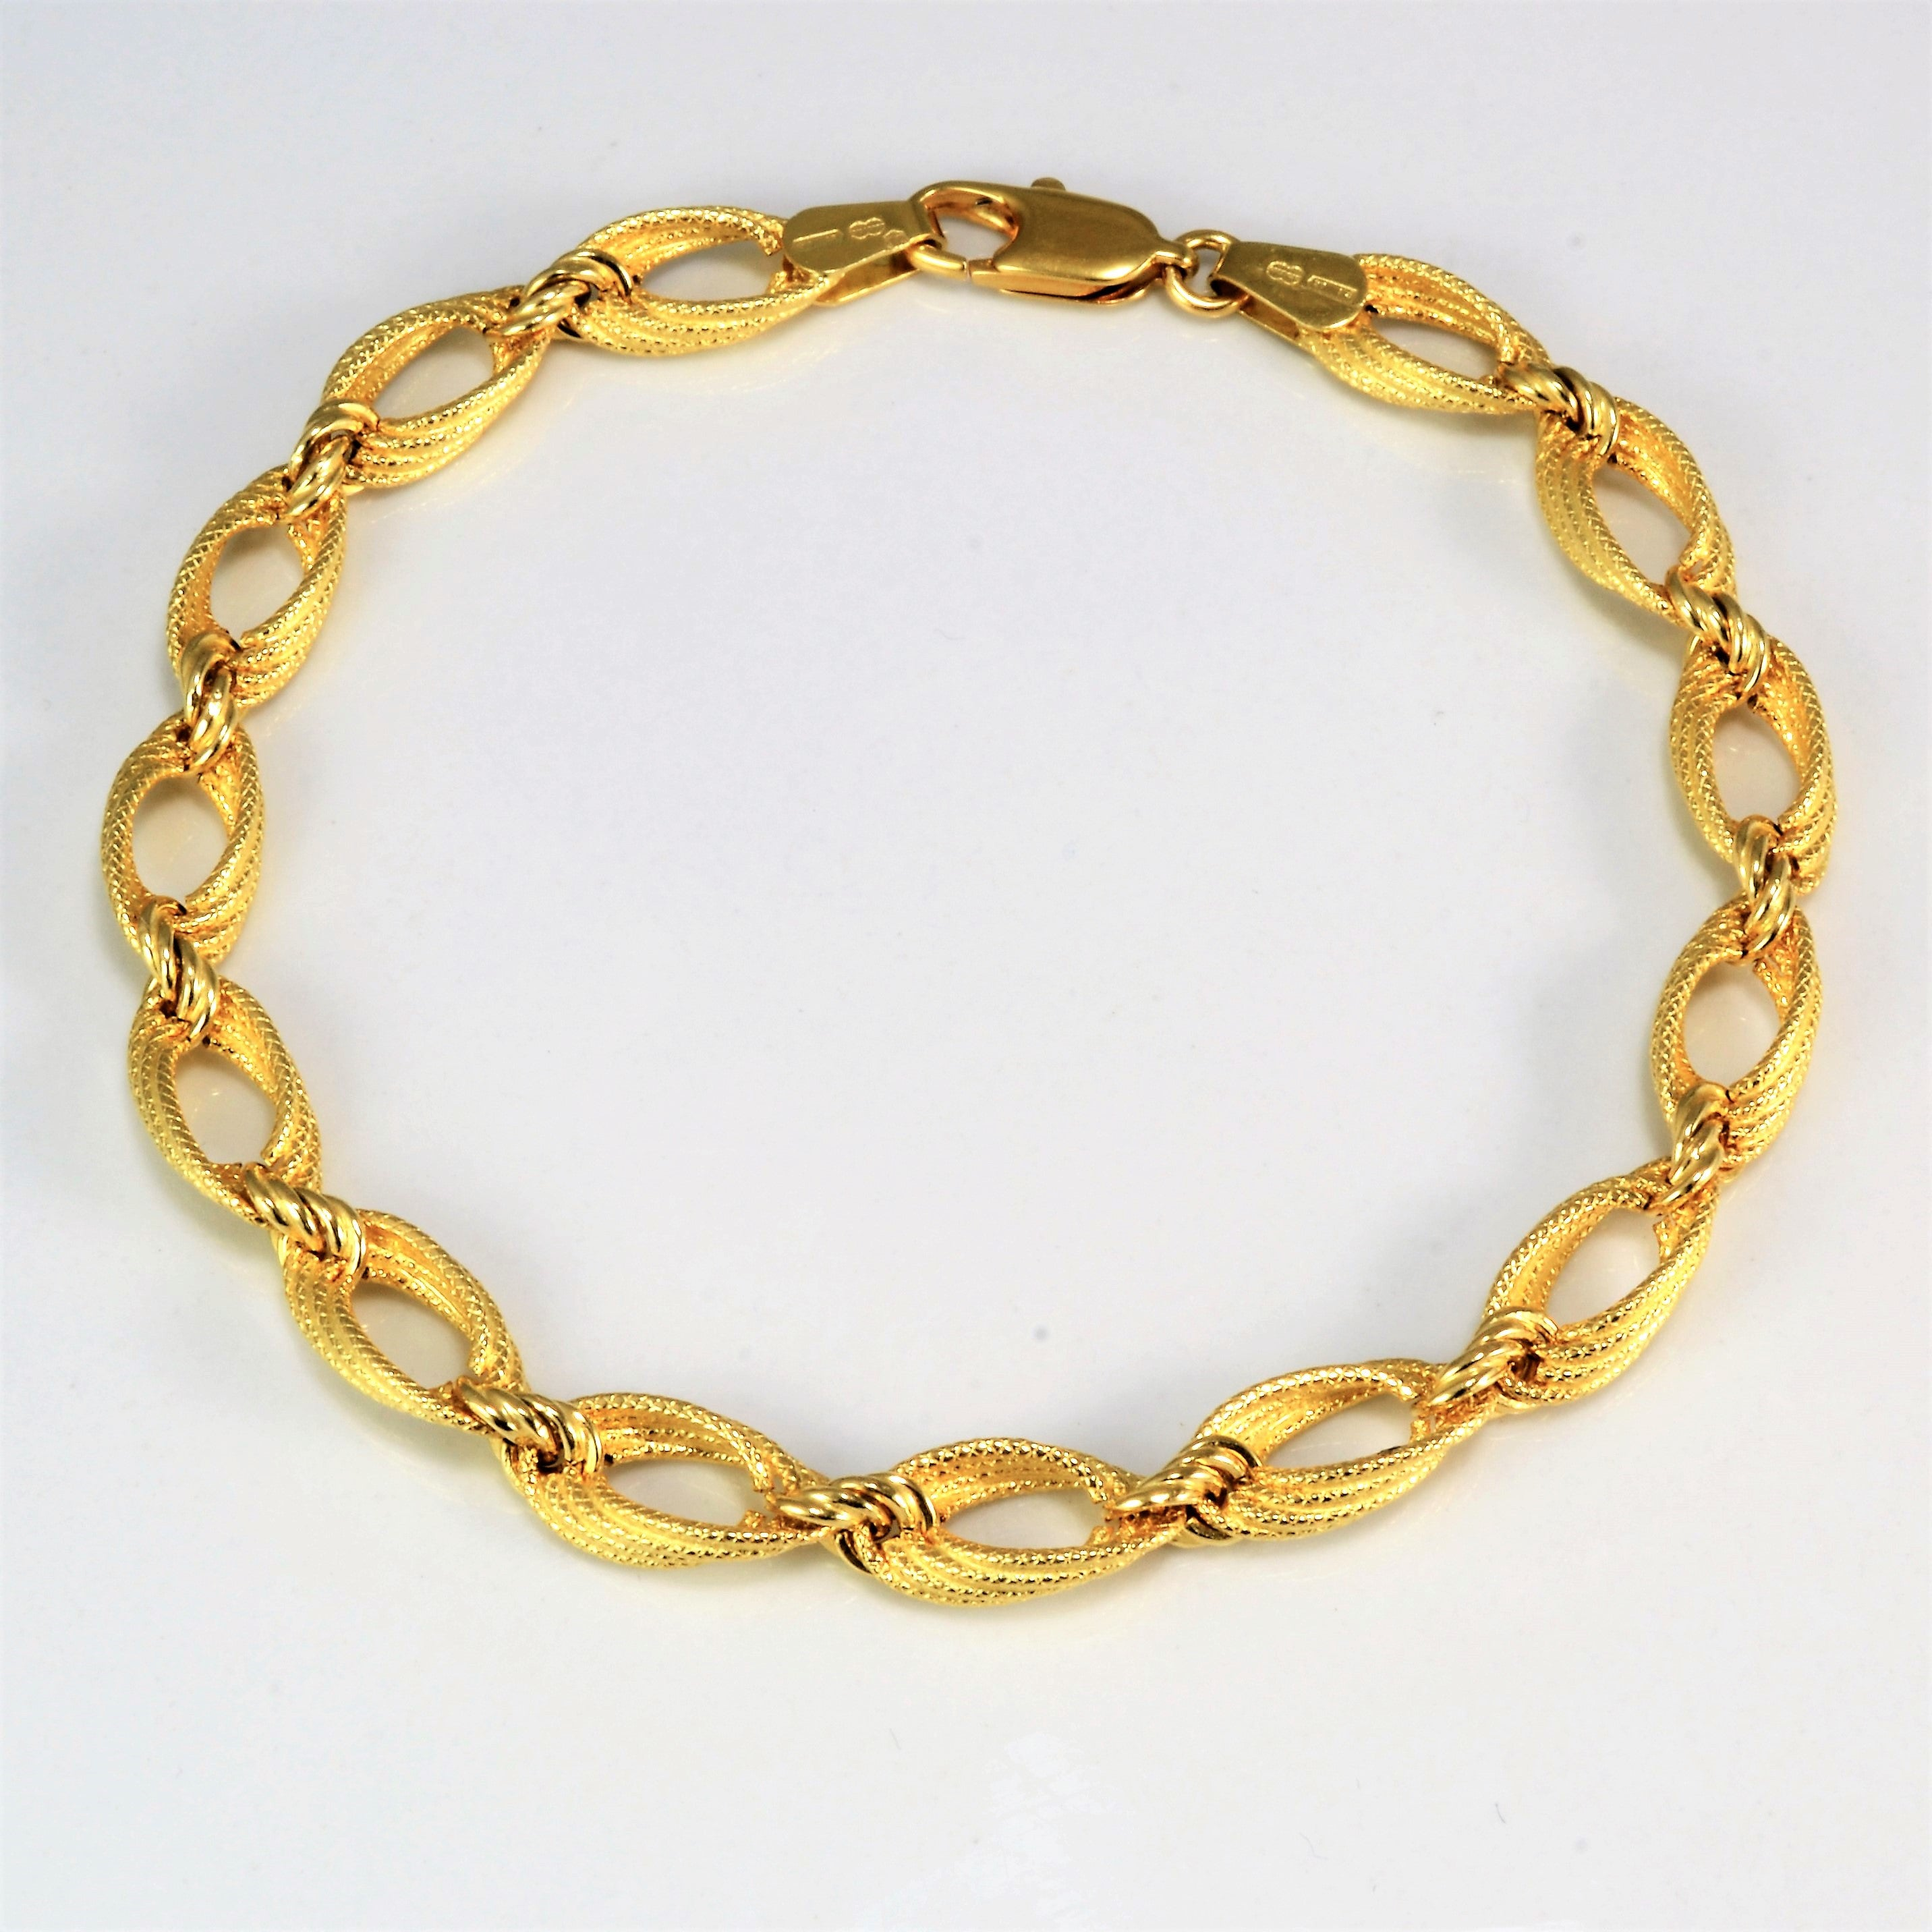 Elegant Braided Chain Bracelet | 7.5'' |